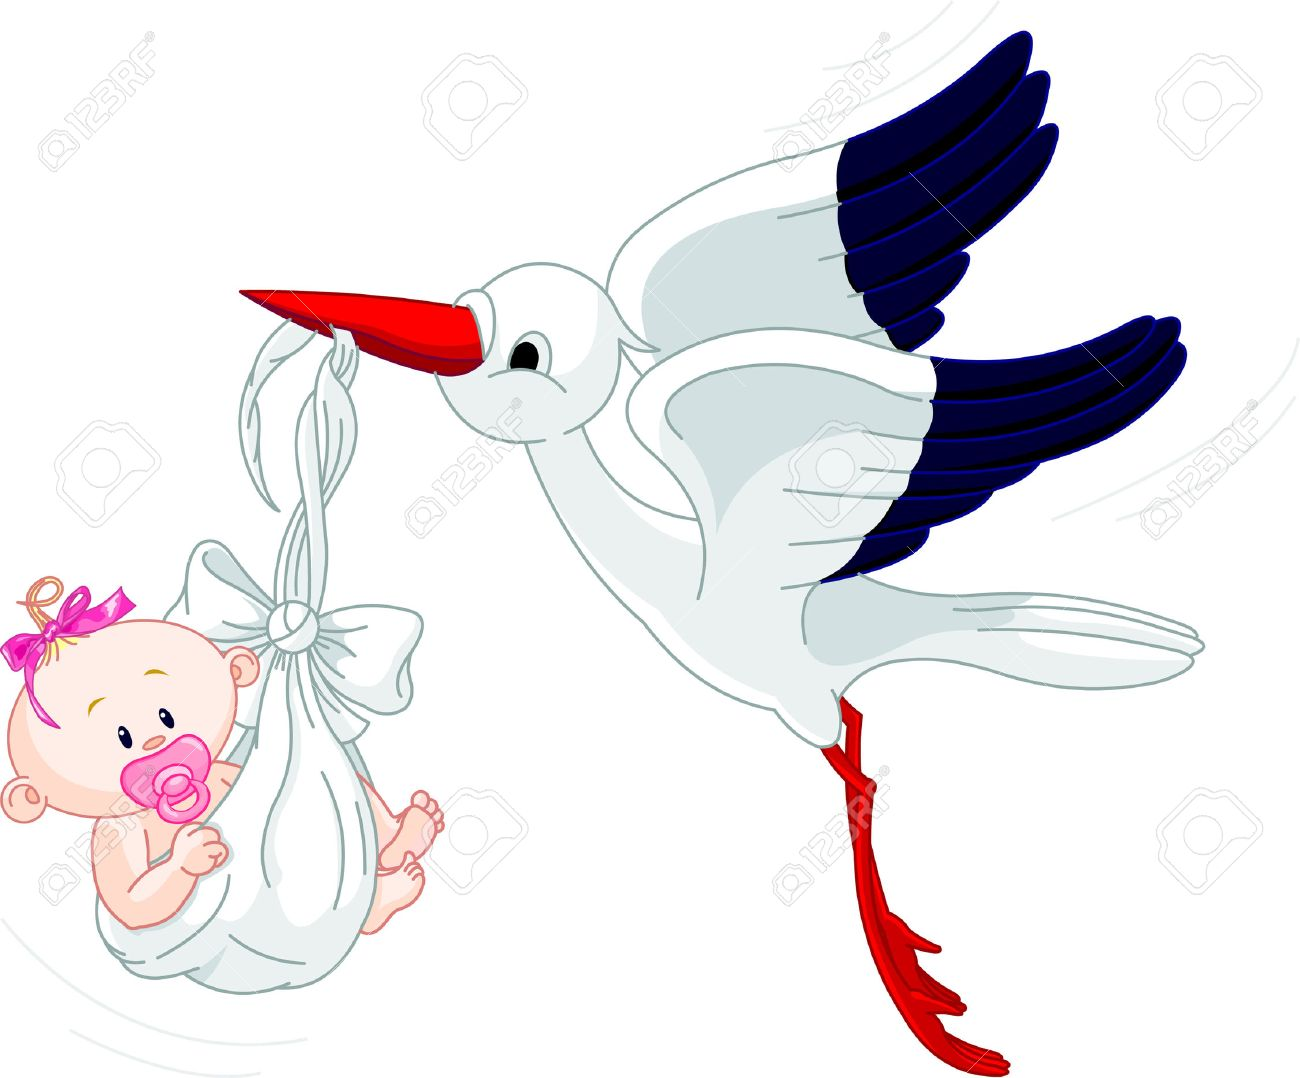 Baby Shower Stork Clipart ~ 7 240 stork stock illustrations cliparts and royalty free stork vectors